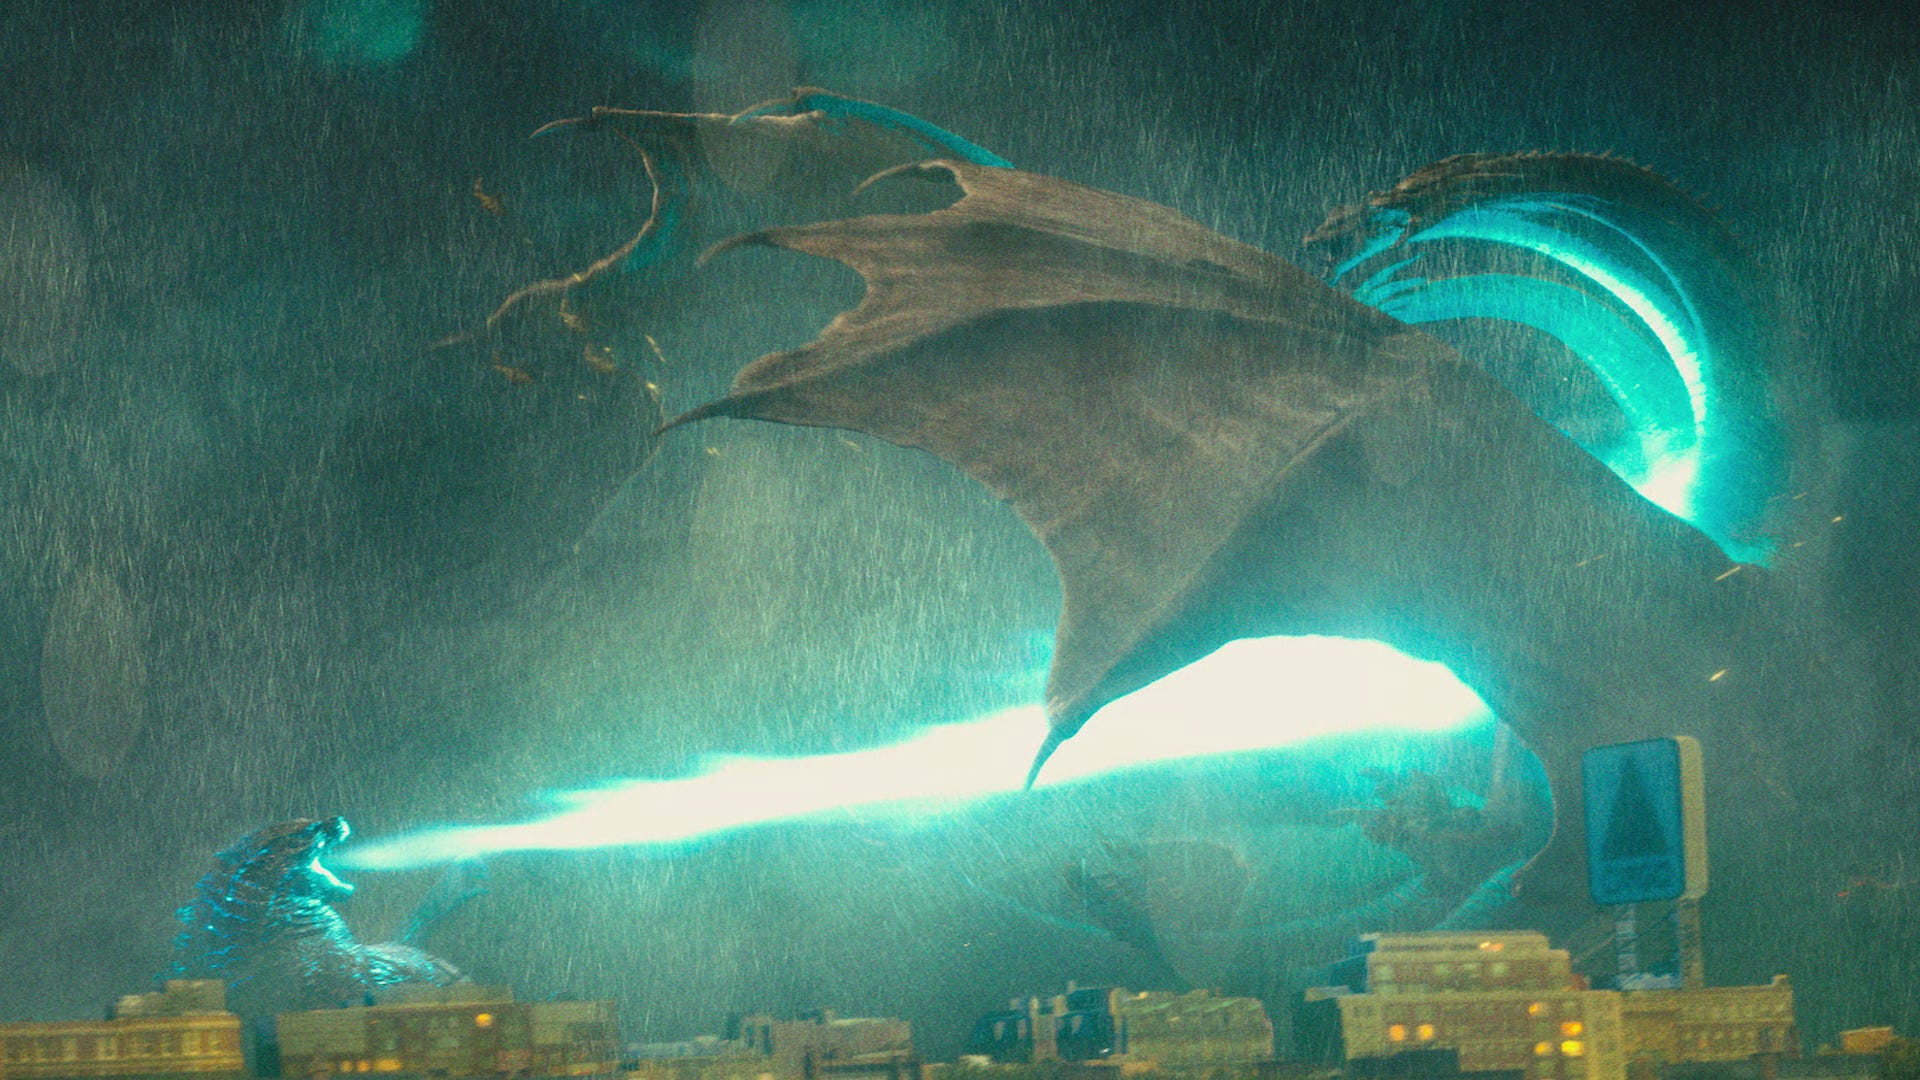 Godzilla faces old foes in 'Godzilla: King of the Monsters'